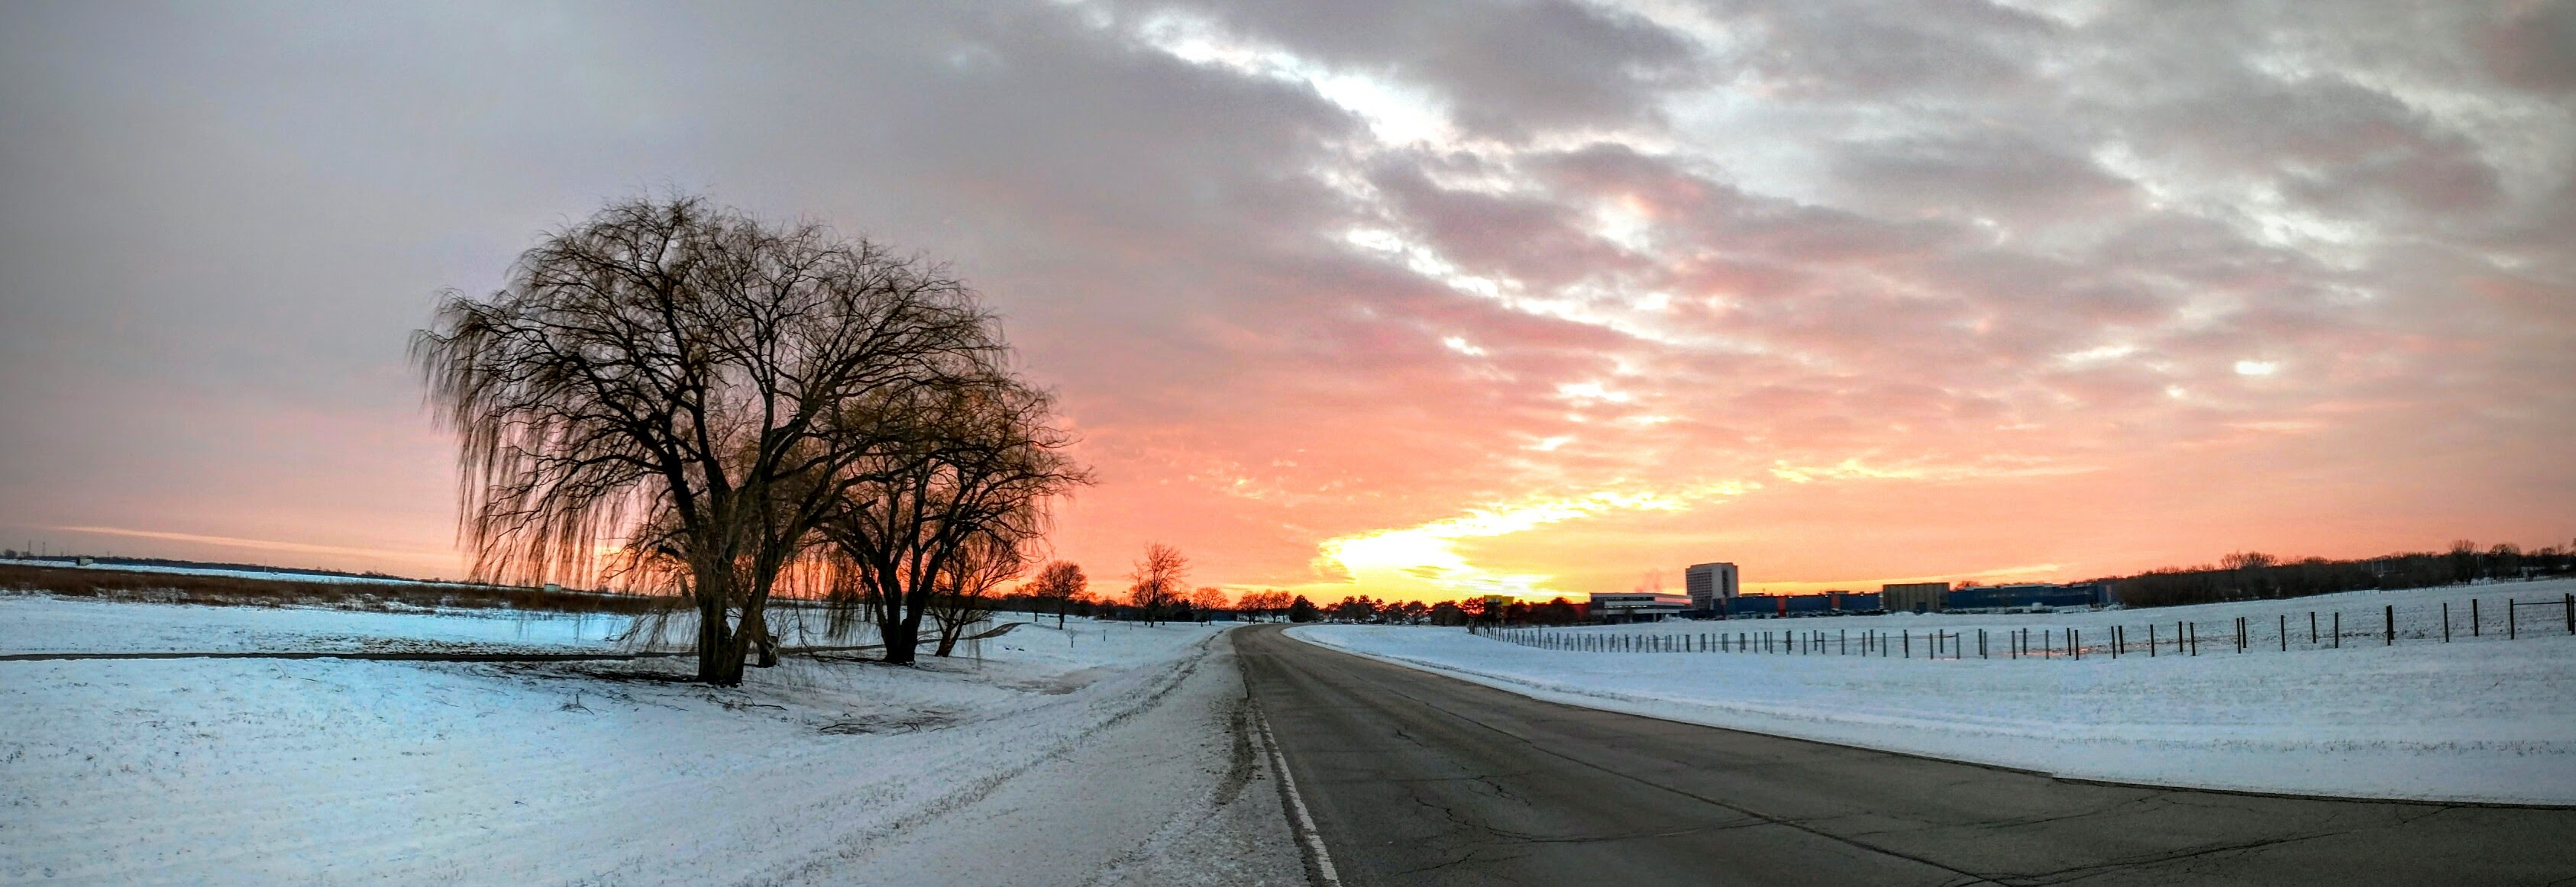 The sun set beautifully over Batavia Road on Jan. 13. Photo: Valery Stanley, WDRS